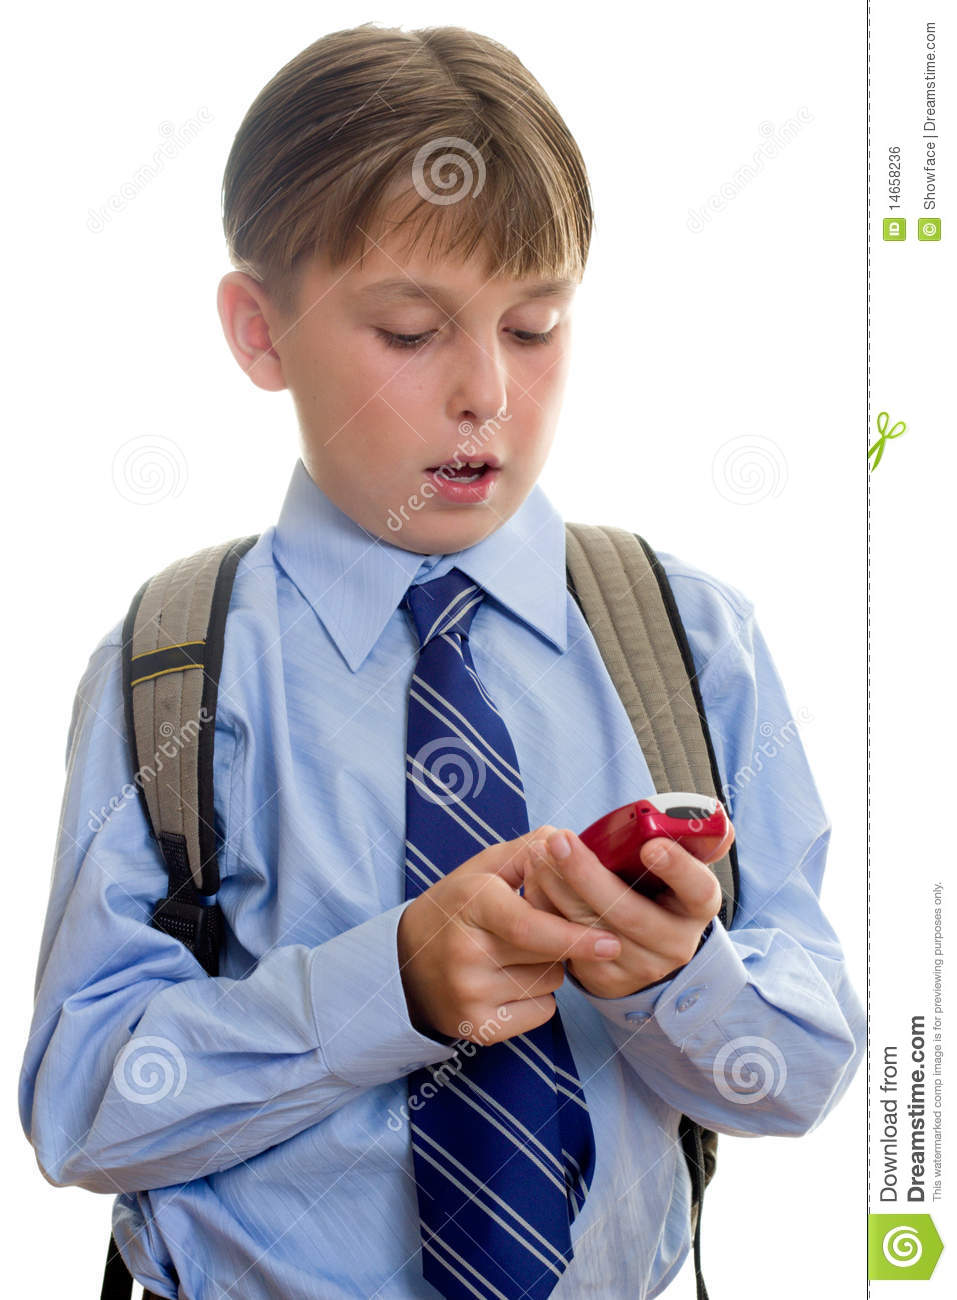 Https Www Dreamstime Com Royalty Free Stock Image School Boy Child Sms Texting Image14658236